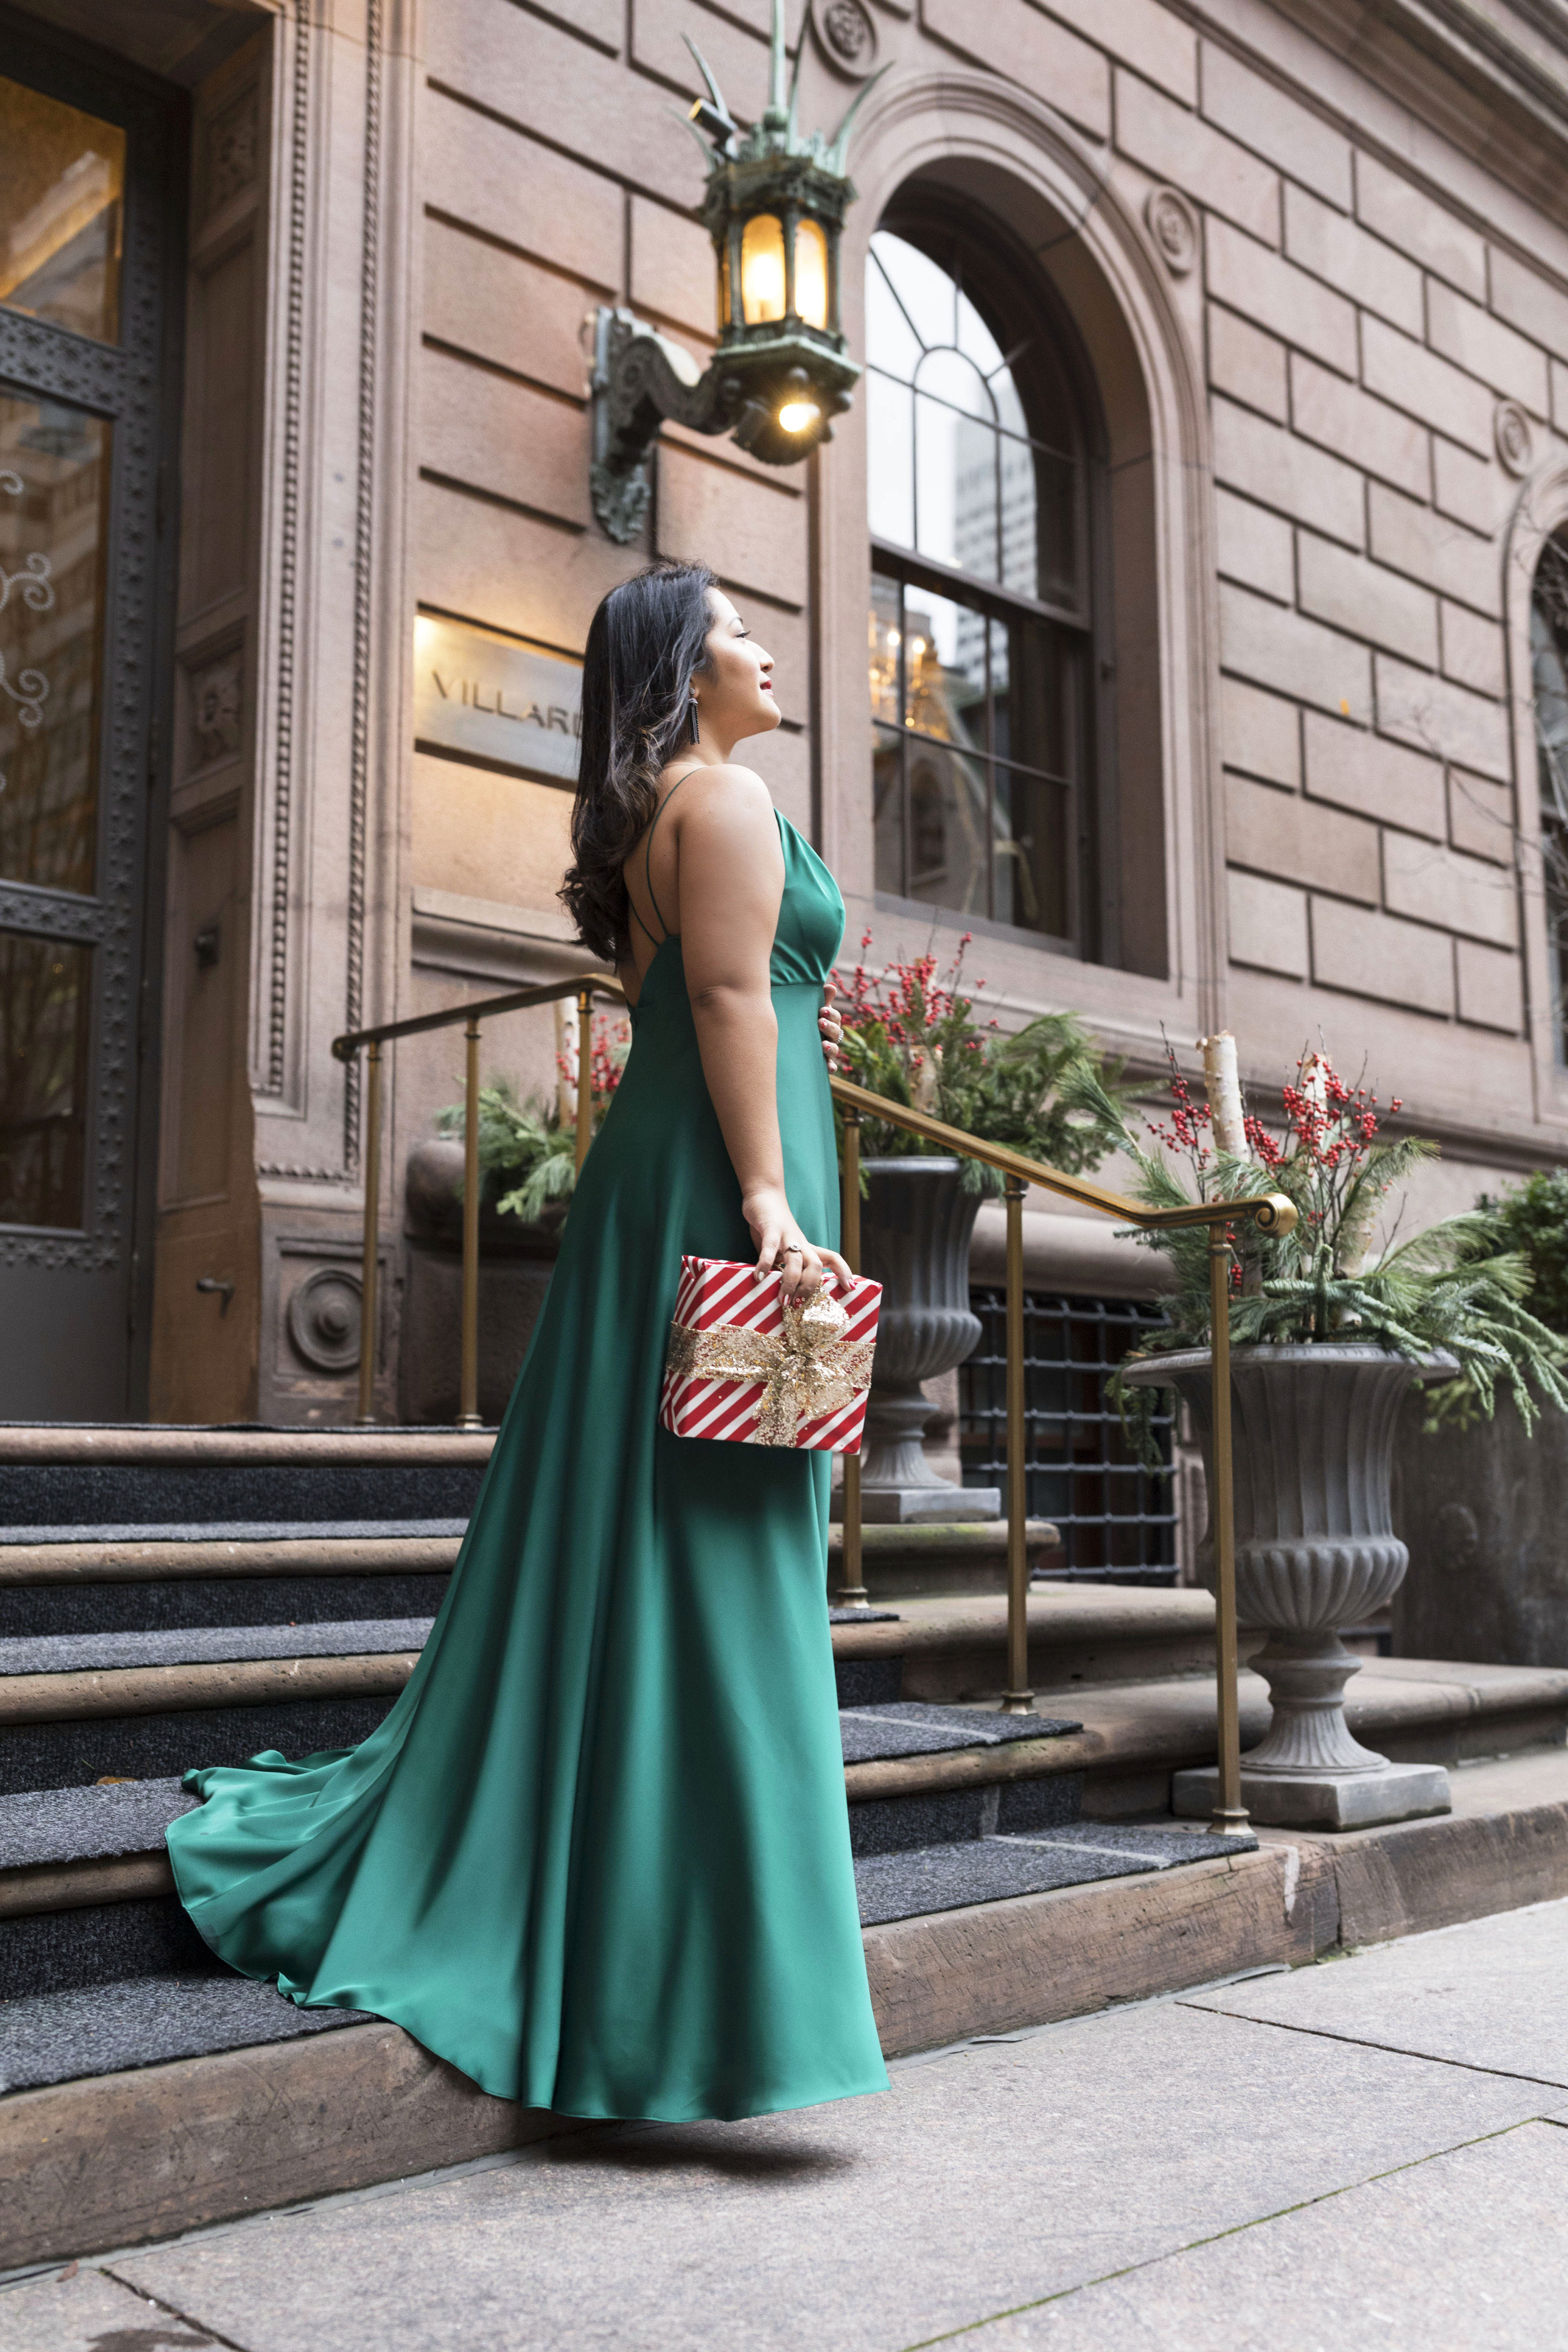 Krity S x Holiday Outfit x Forest Silk Aidan Mattox Gown 7.jpg